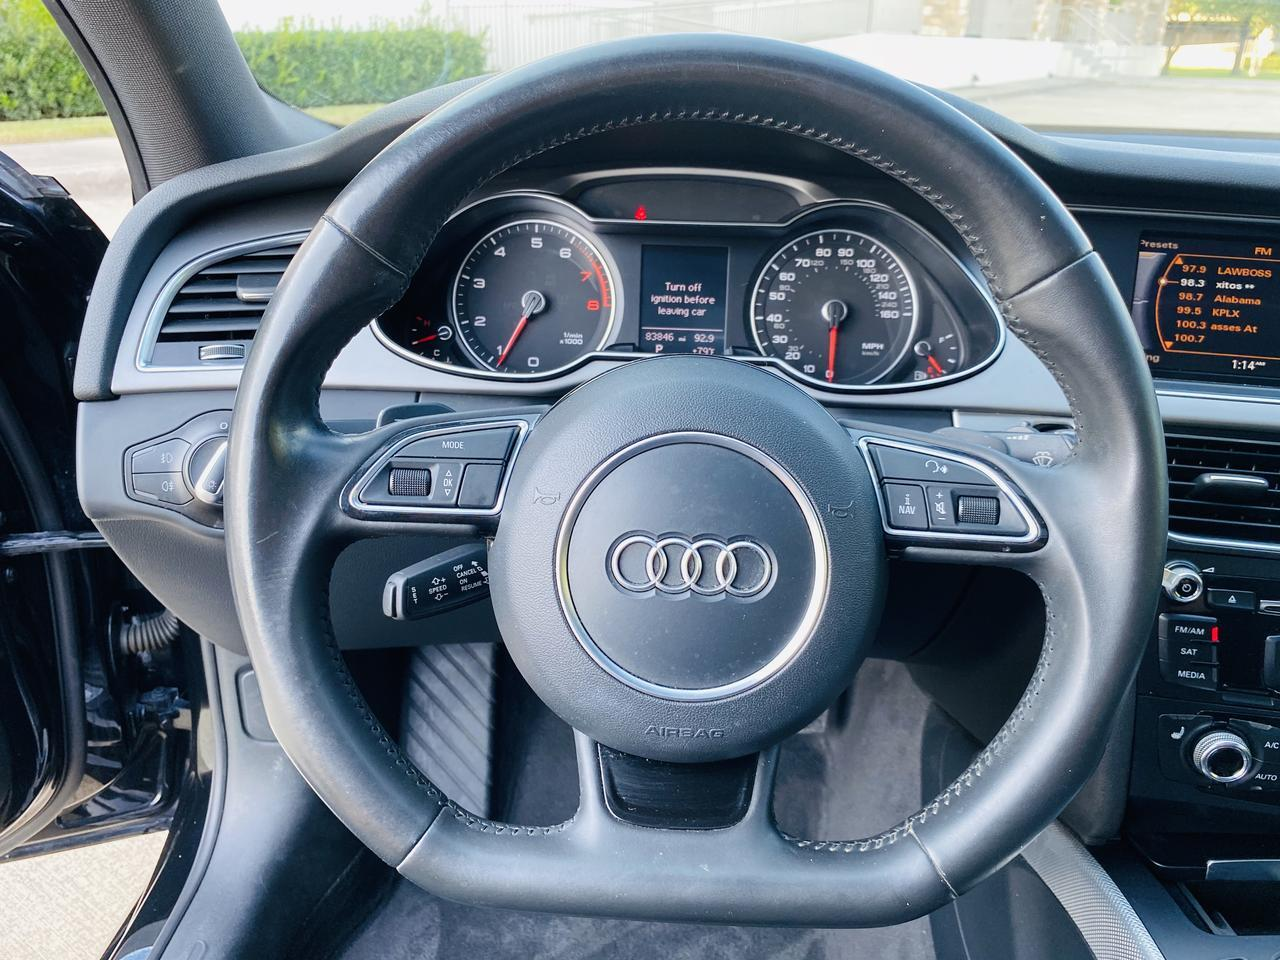 2015 Audi A4 2.0T Premium Plus S-line Dallas TX